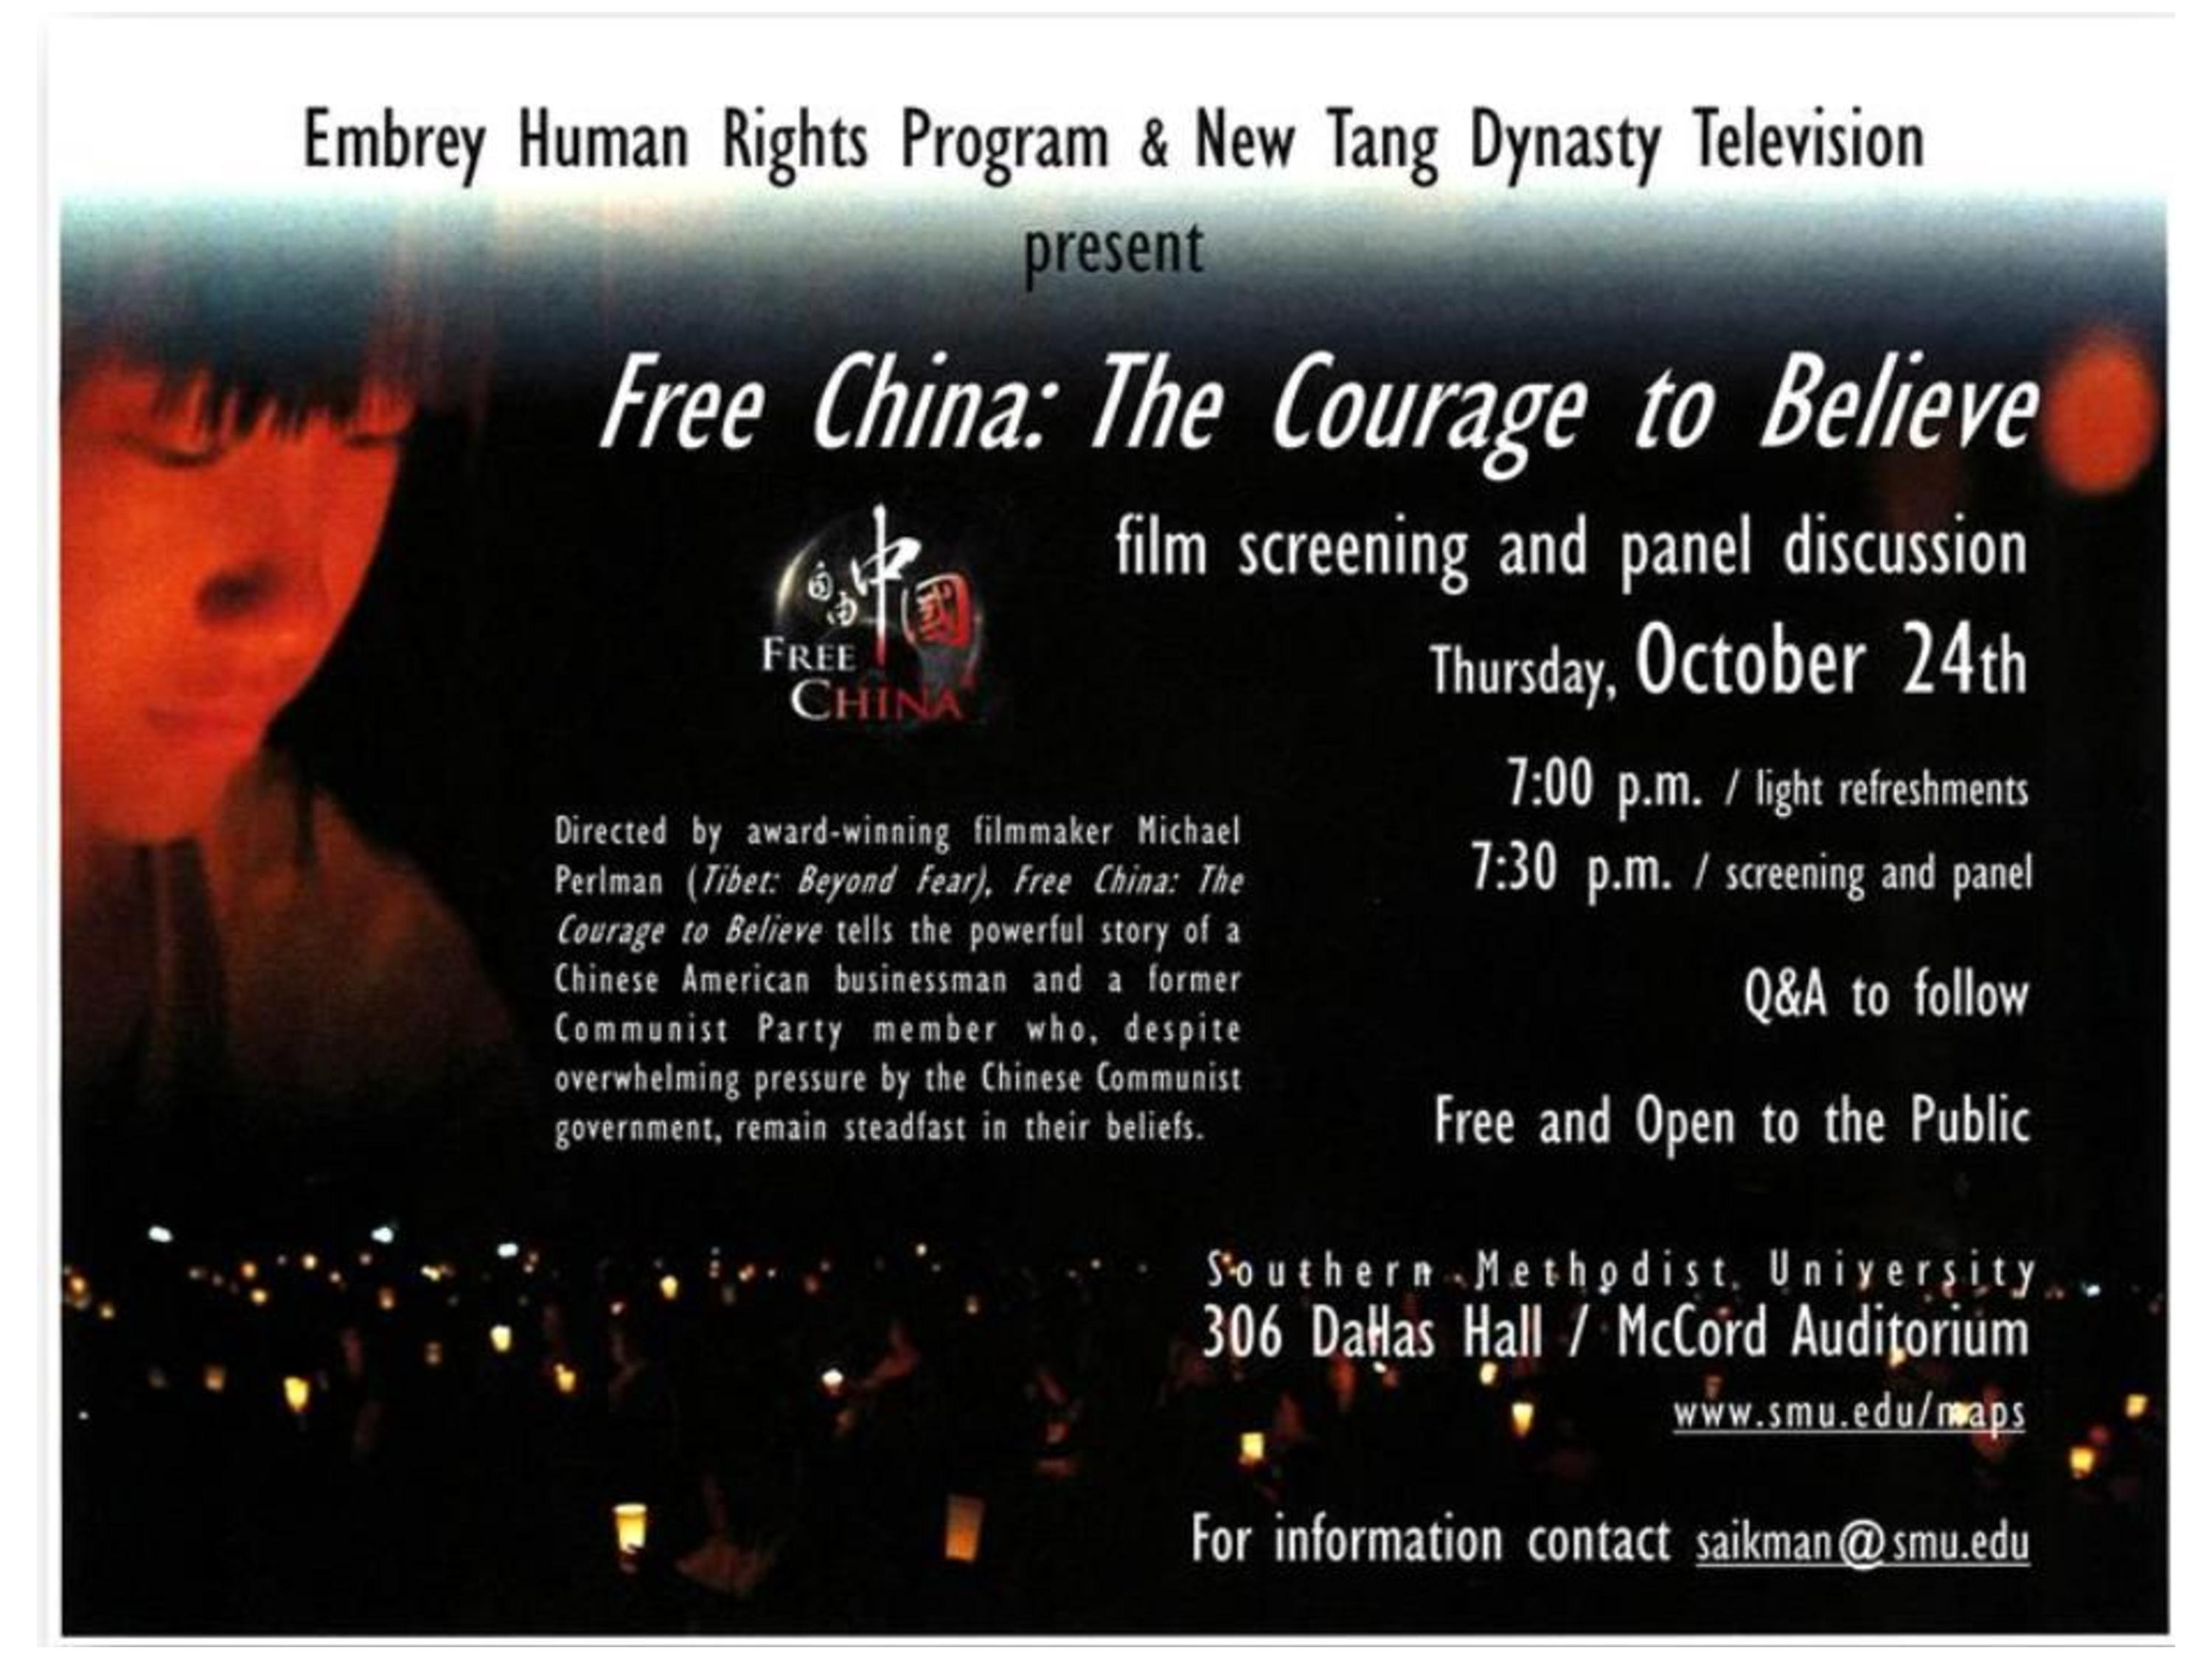 FreeChina_Dallas_Oct 24_2013 Invitation